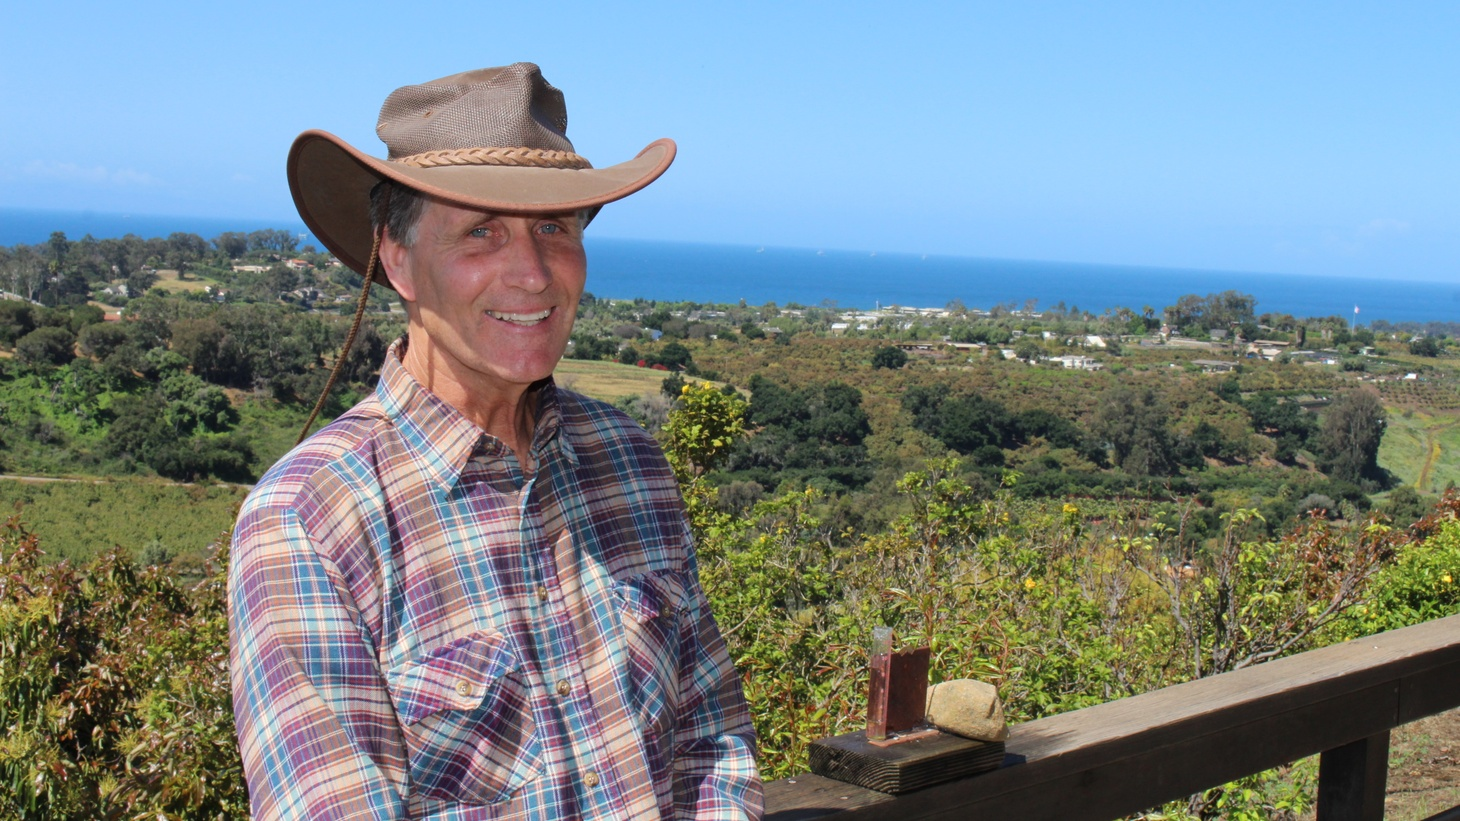 Scott van der Kar is a long-time avocado farmer in Carpenteria.